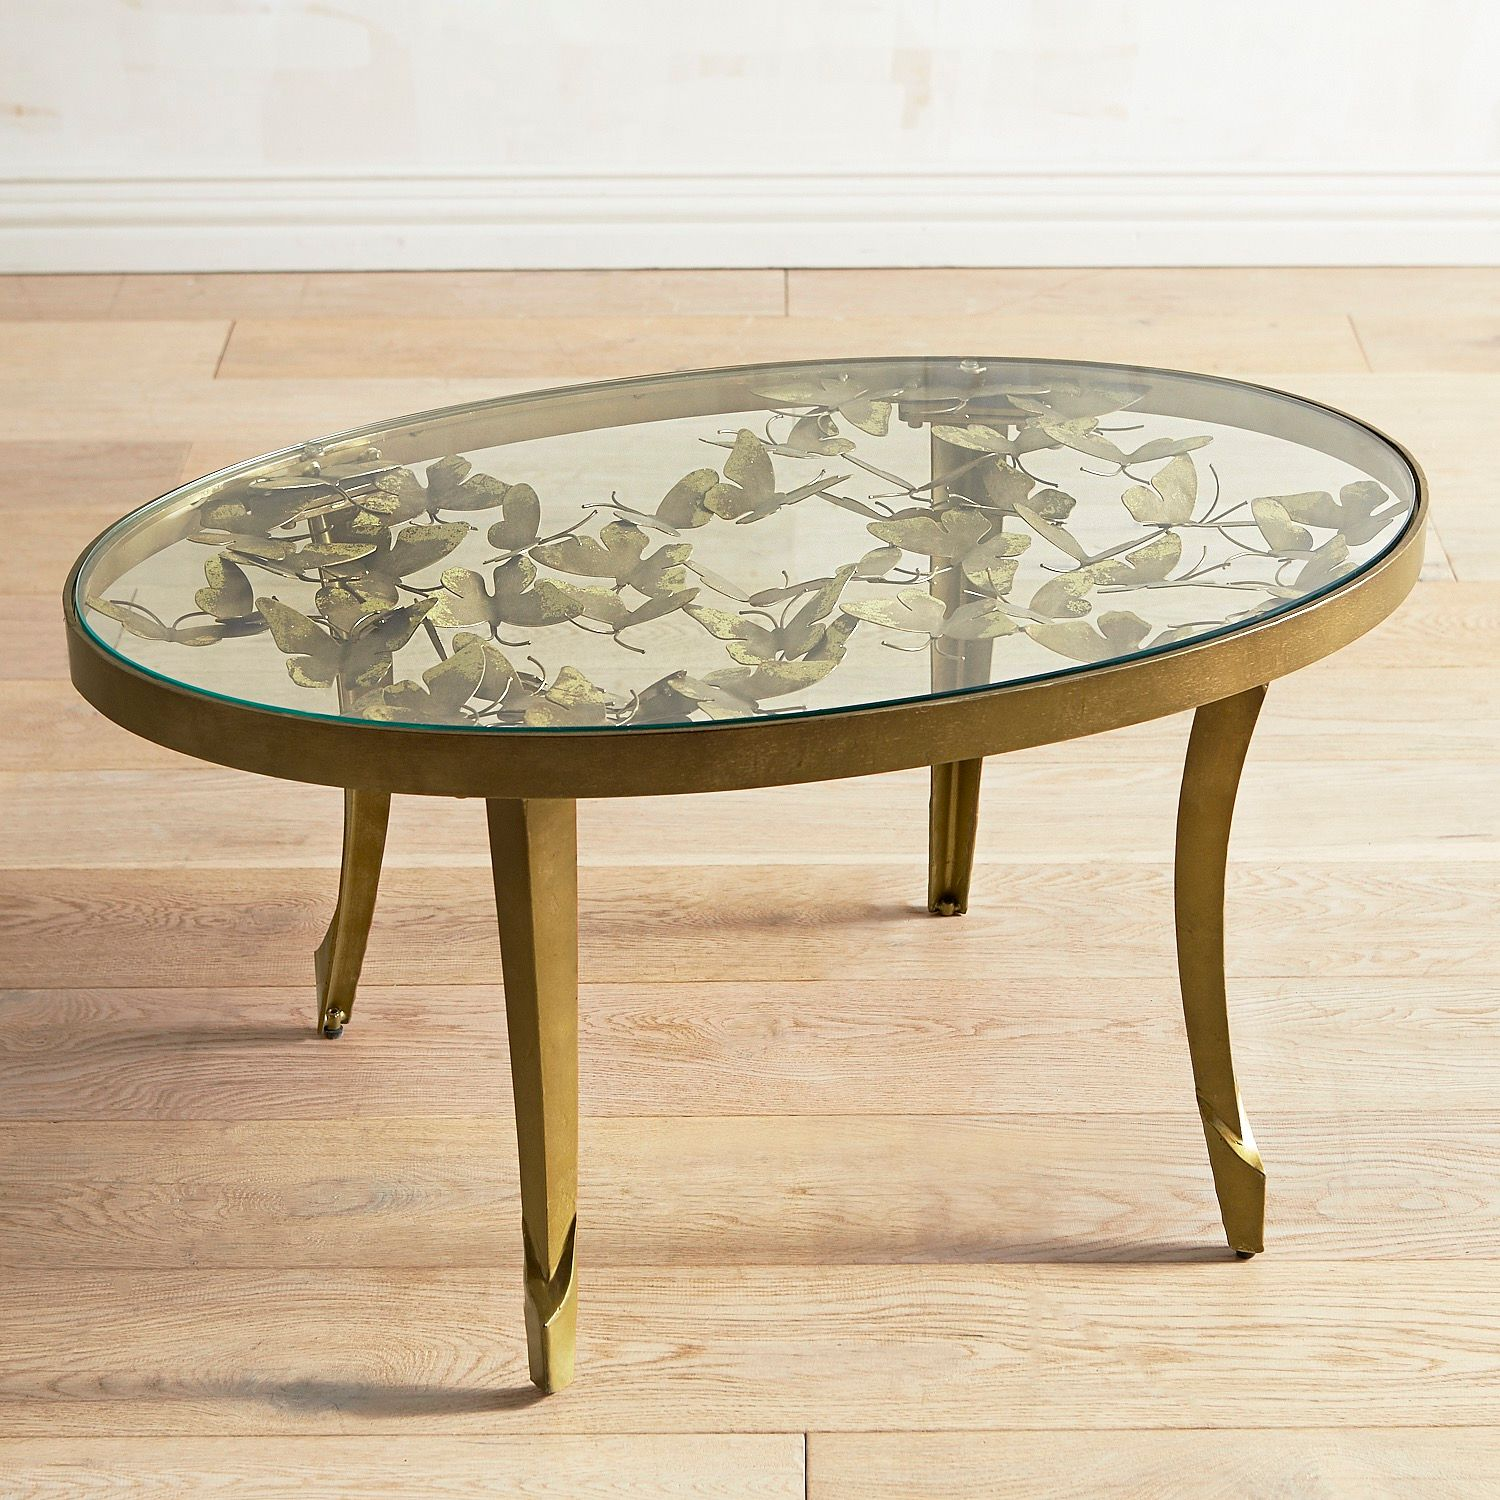 golden butterfly coffee table pier imports glass accent red metal side small round mirror stool oval shaped marble top end tables plastic patio and chairs very nightstand